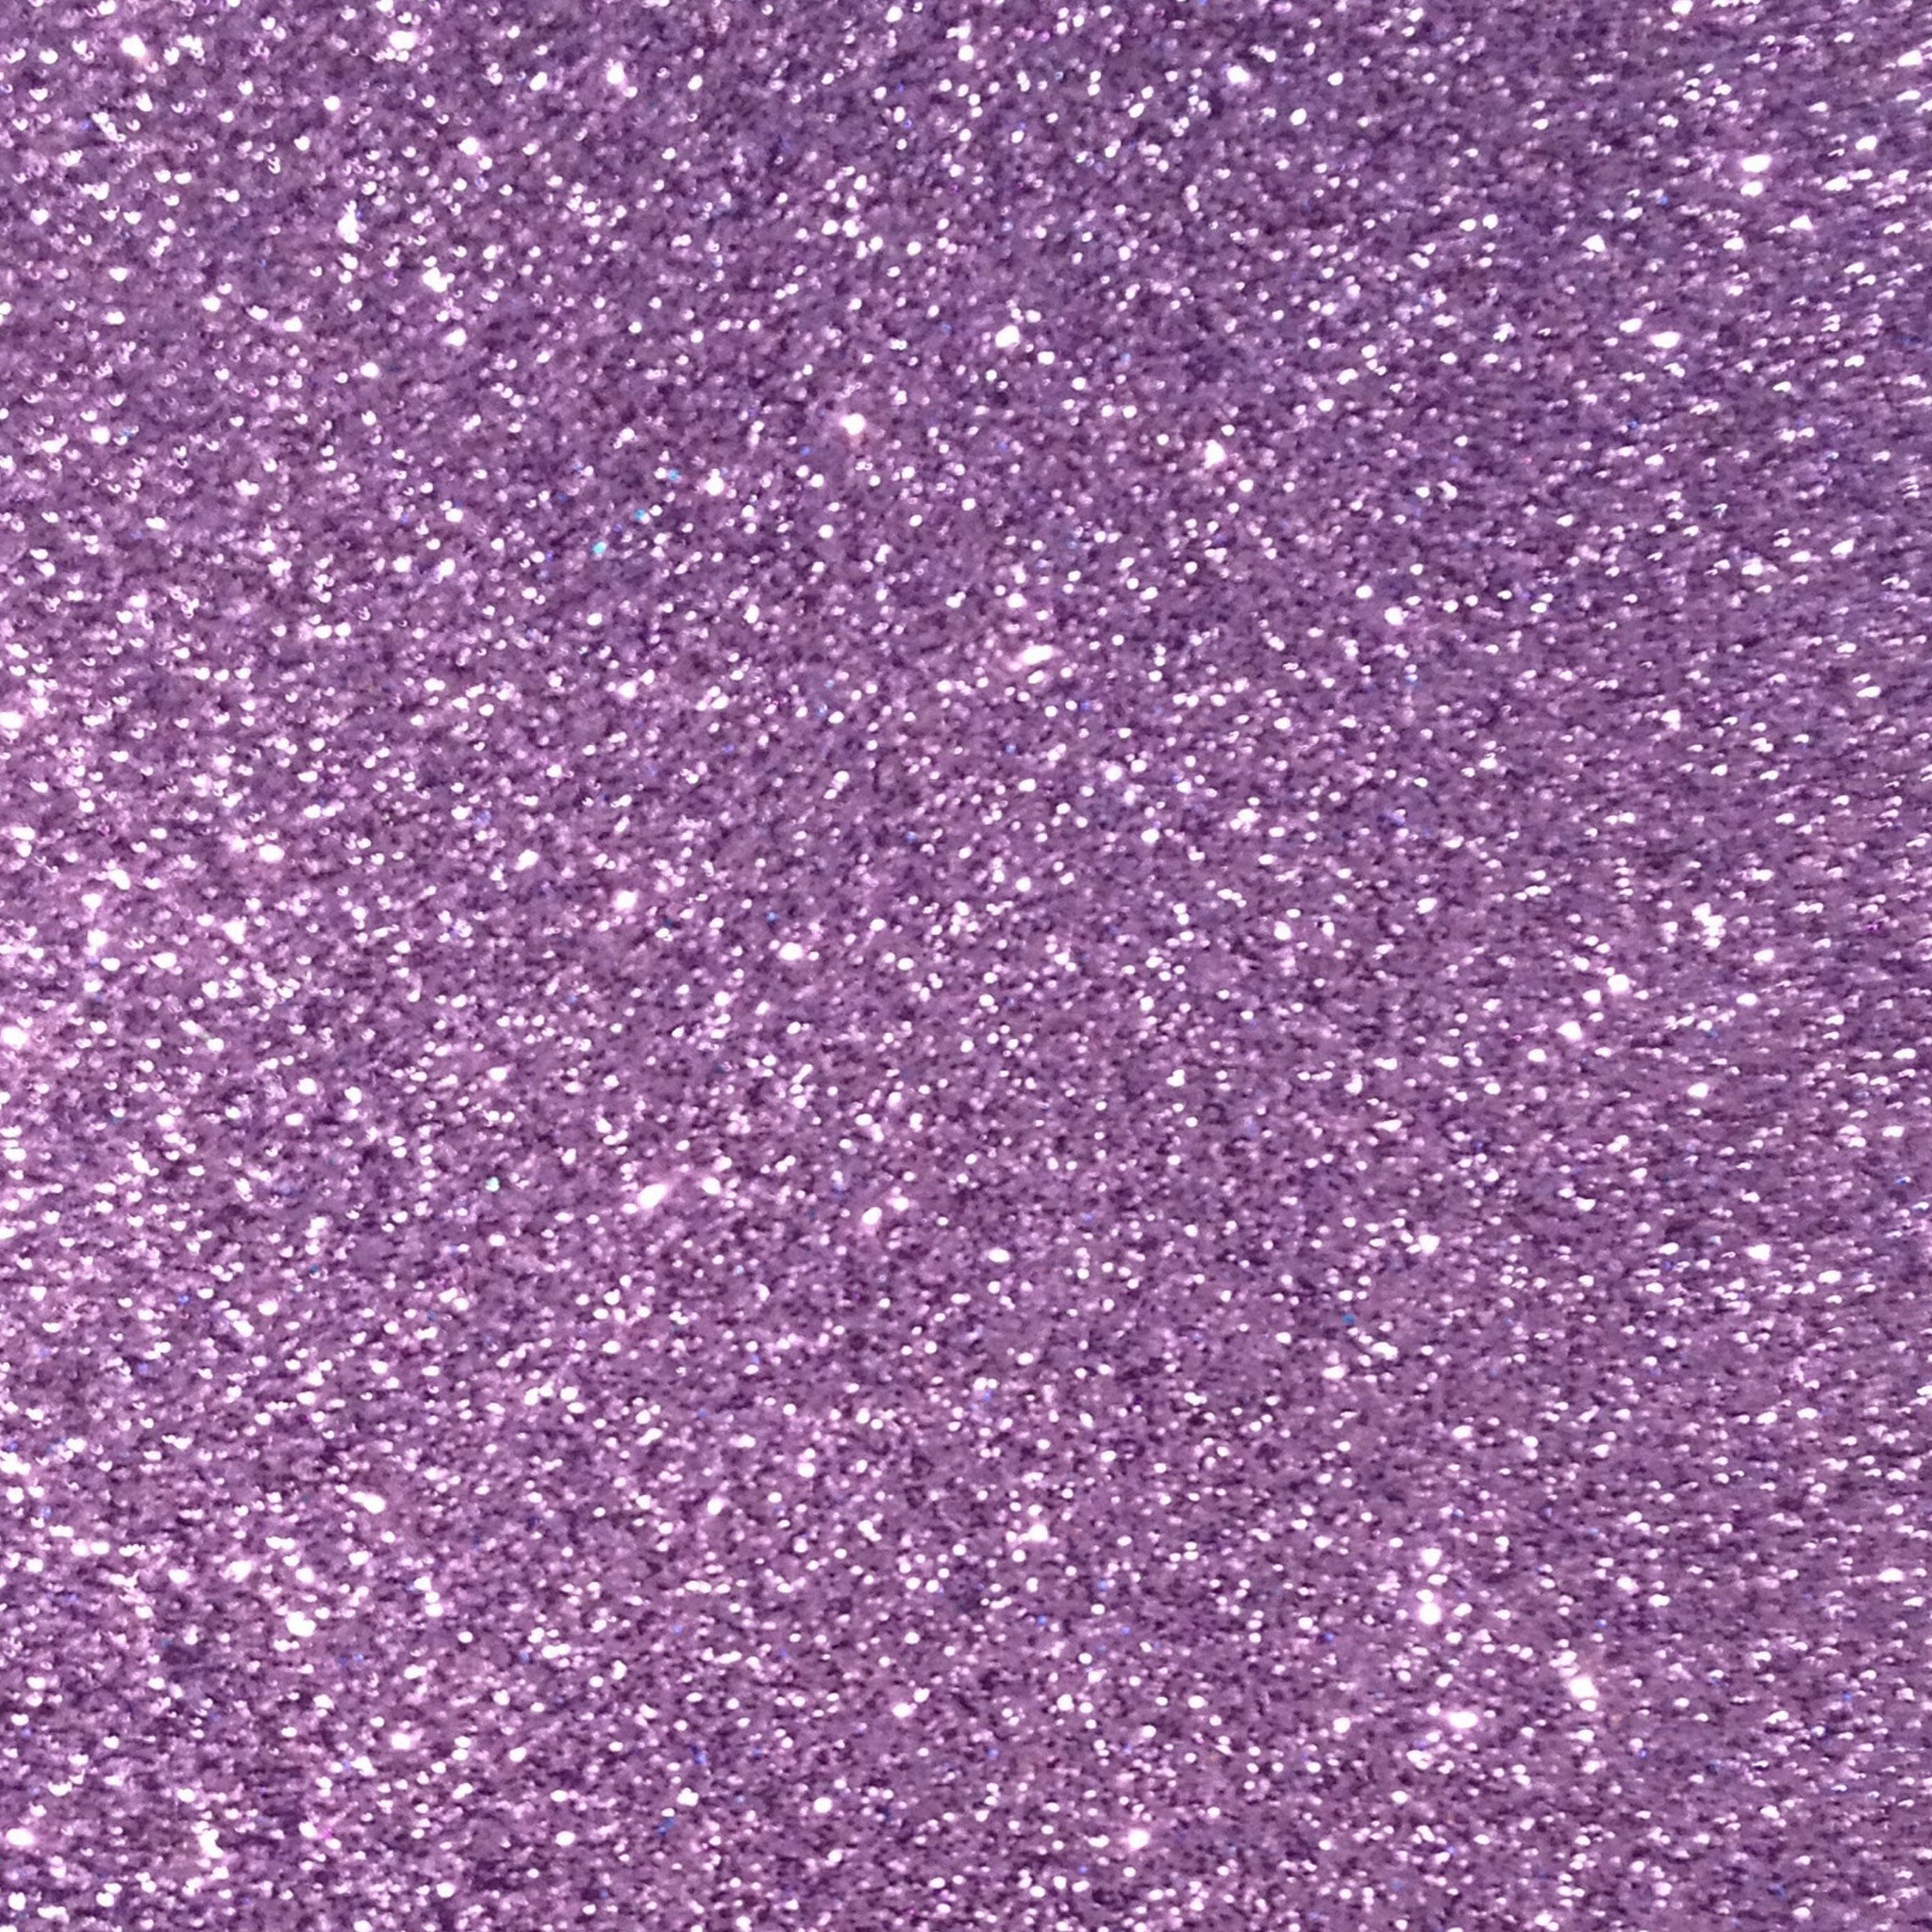 Violet Glitter. Tap image for more glitter wallpapers for iPhone, iPad &  Android!